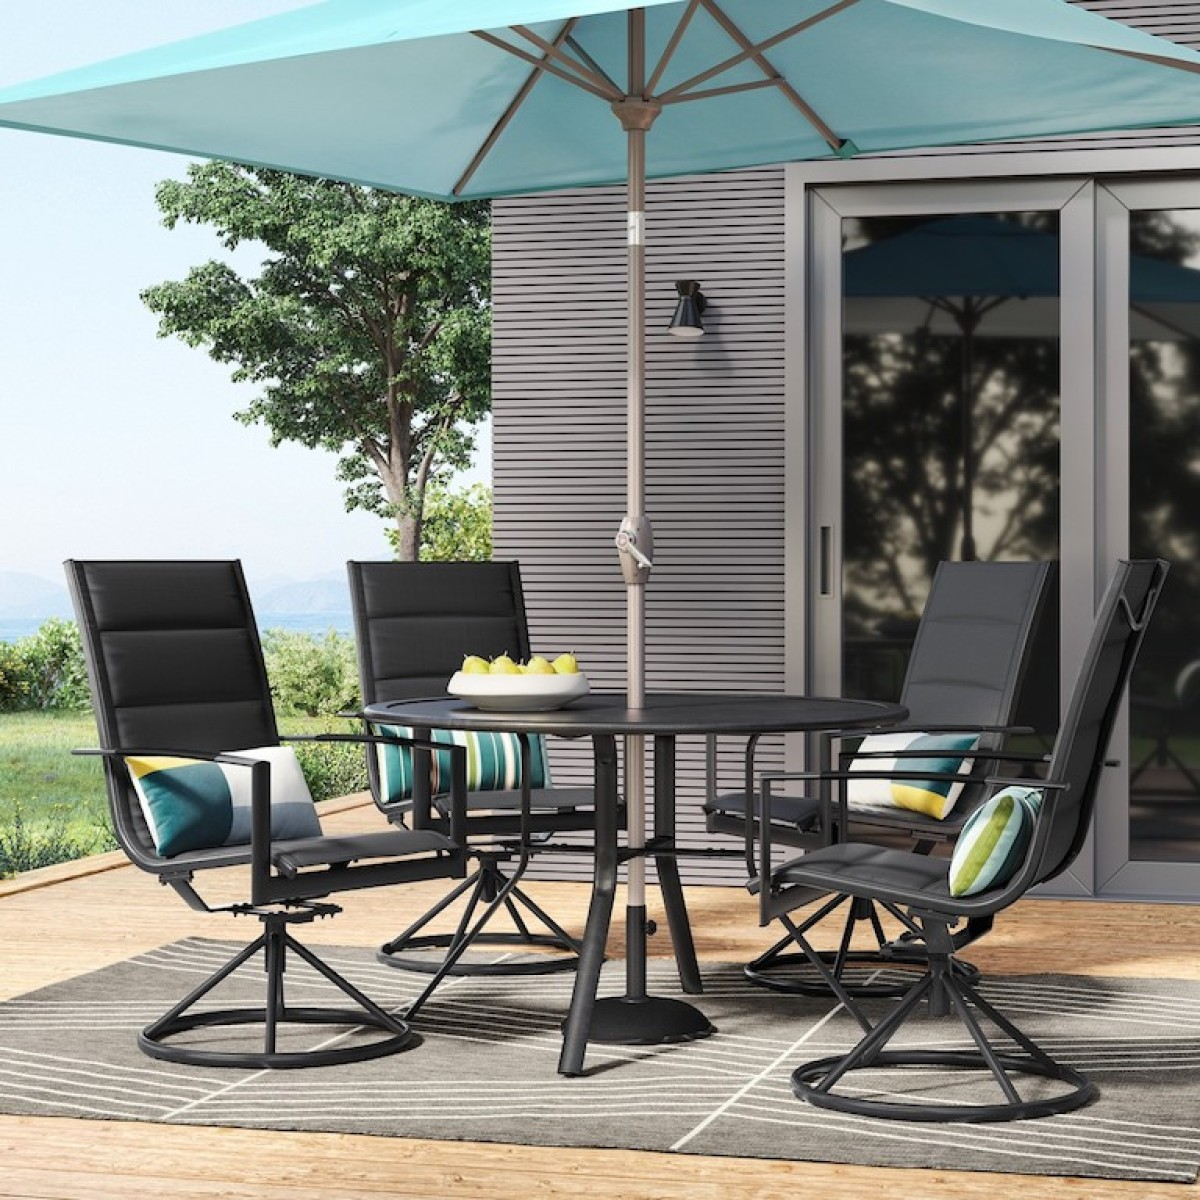 40 off patio sets  tables at target  two 5 off